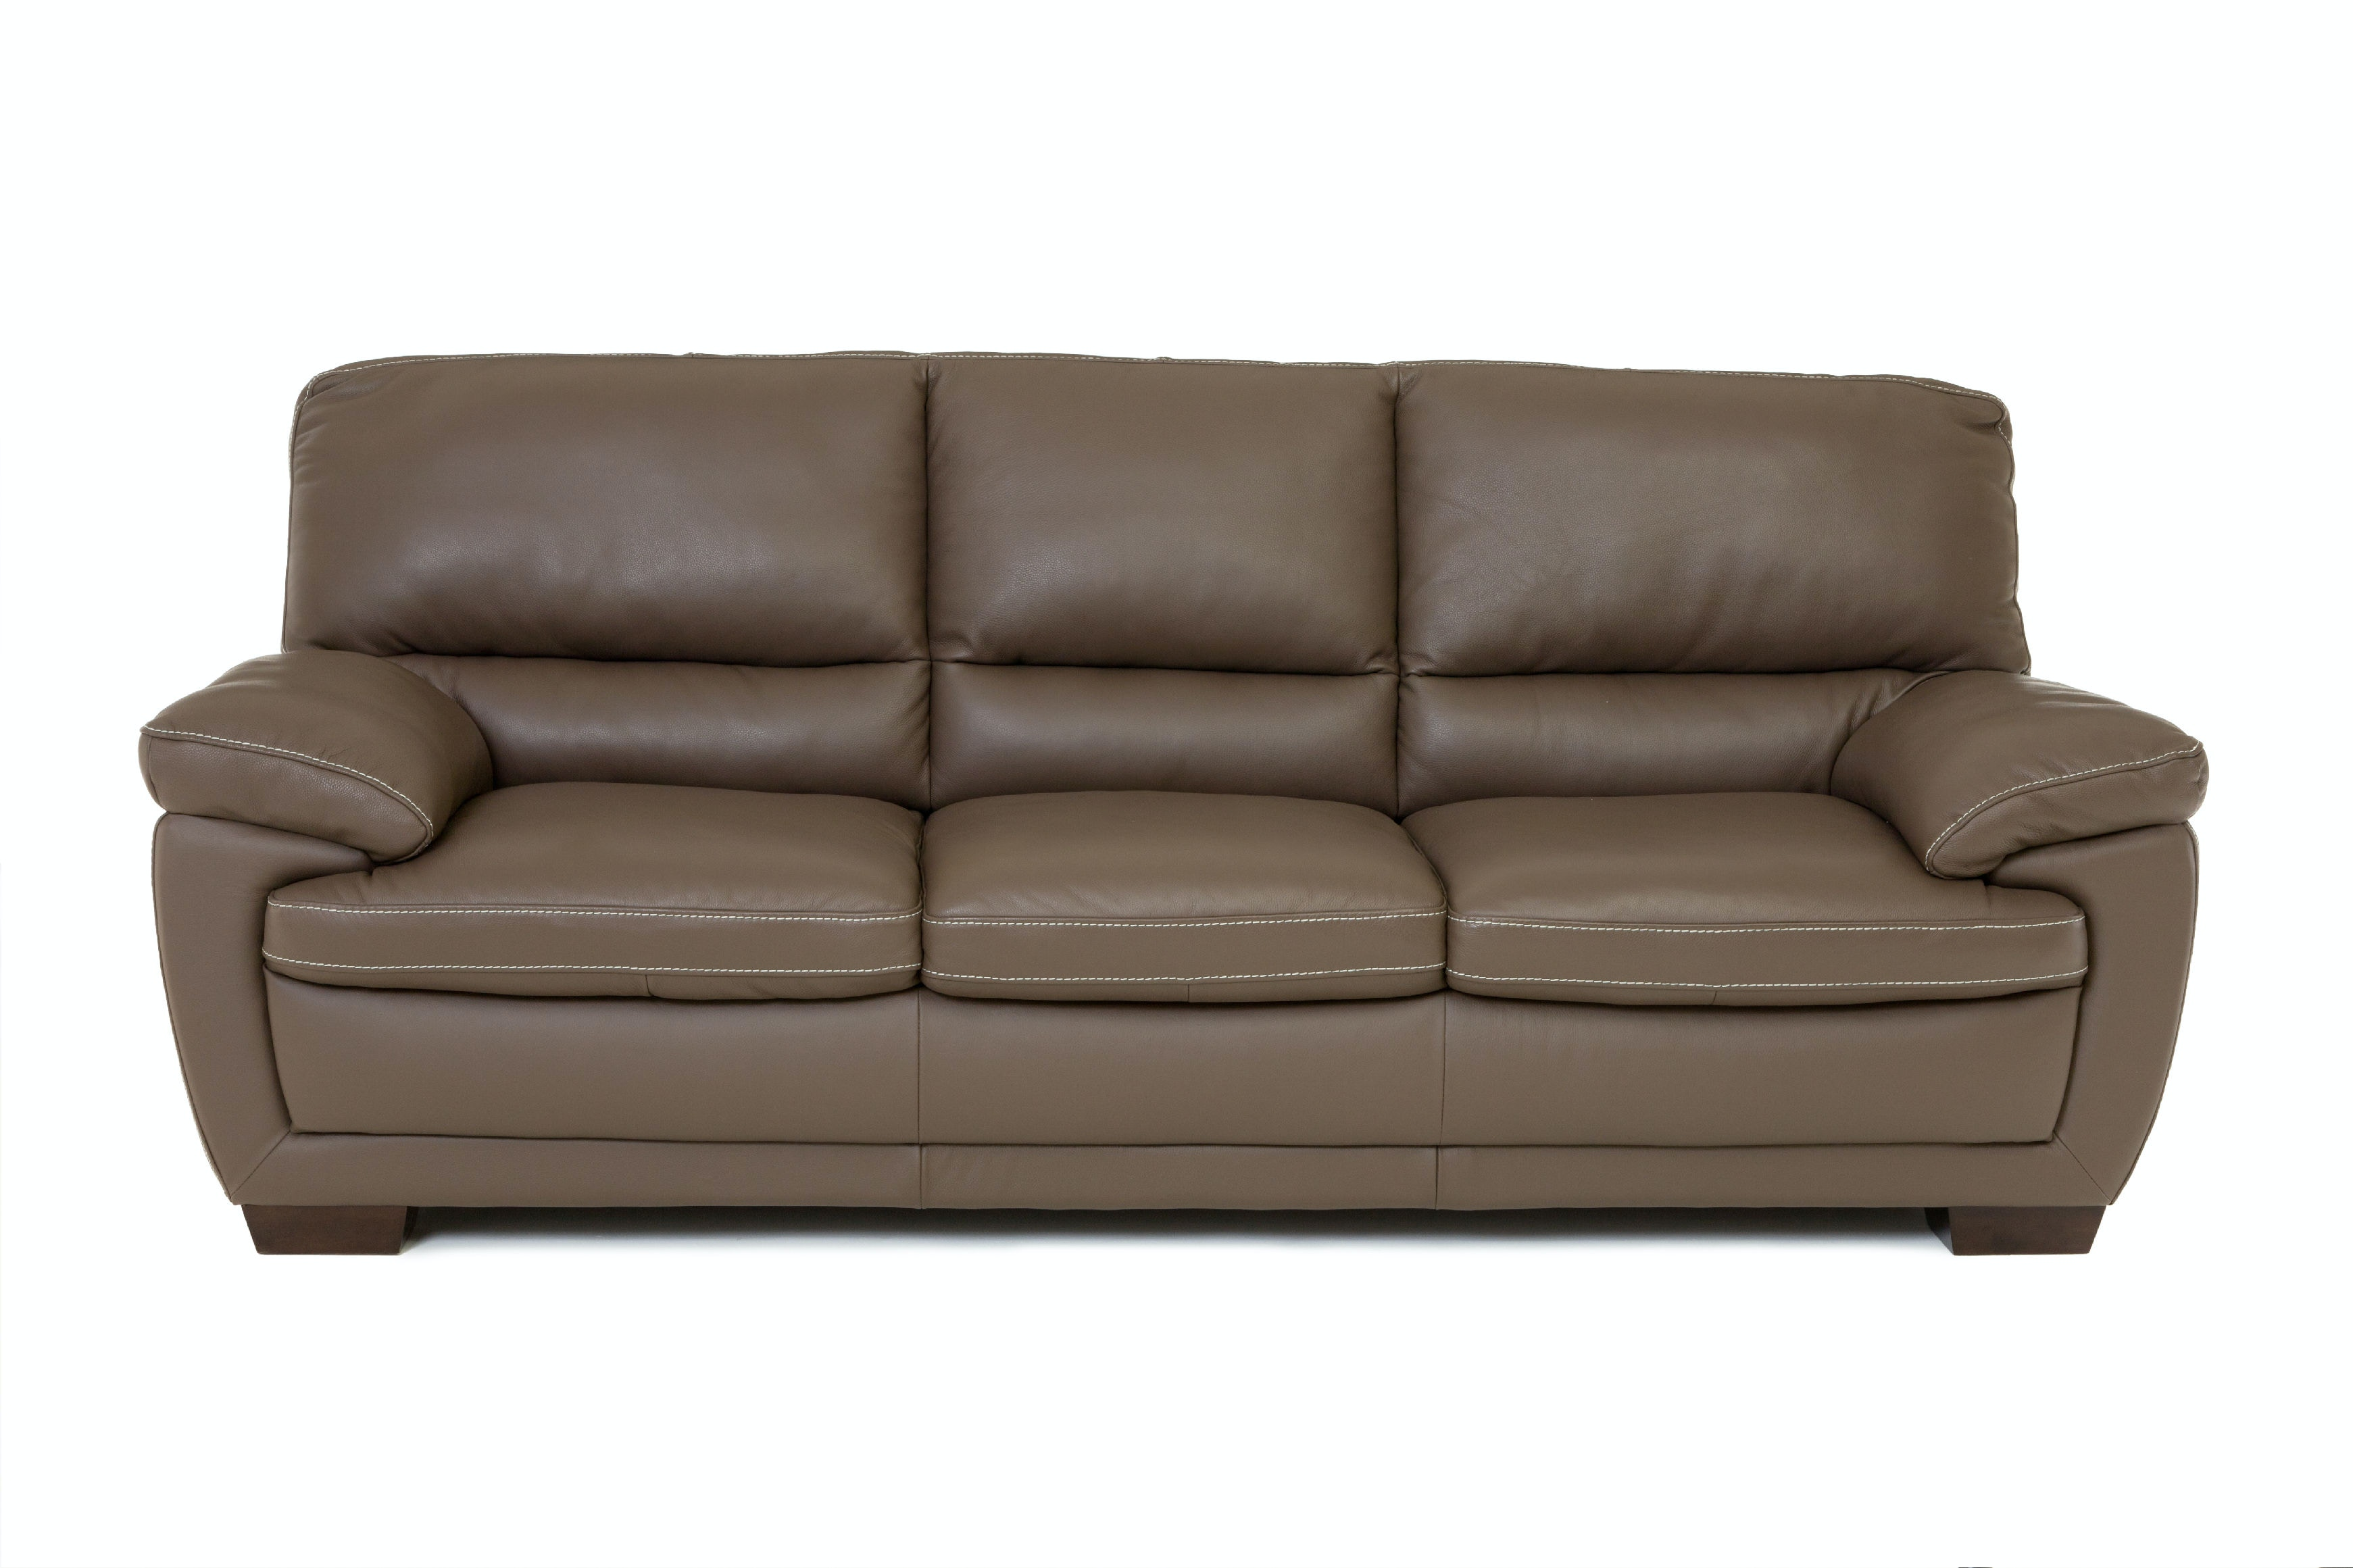 Denver Leather Sofa   DARK TAUPE